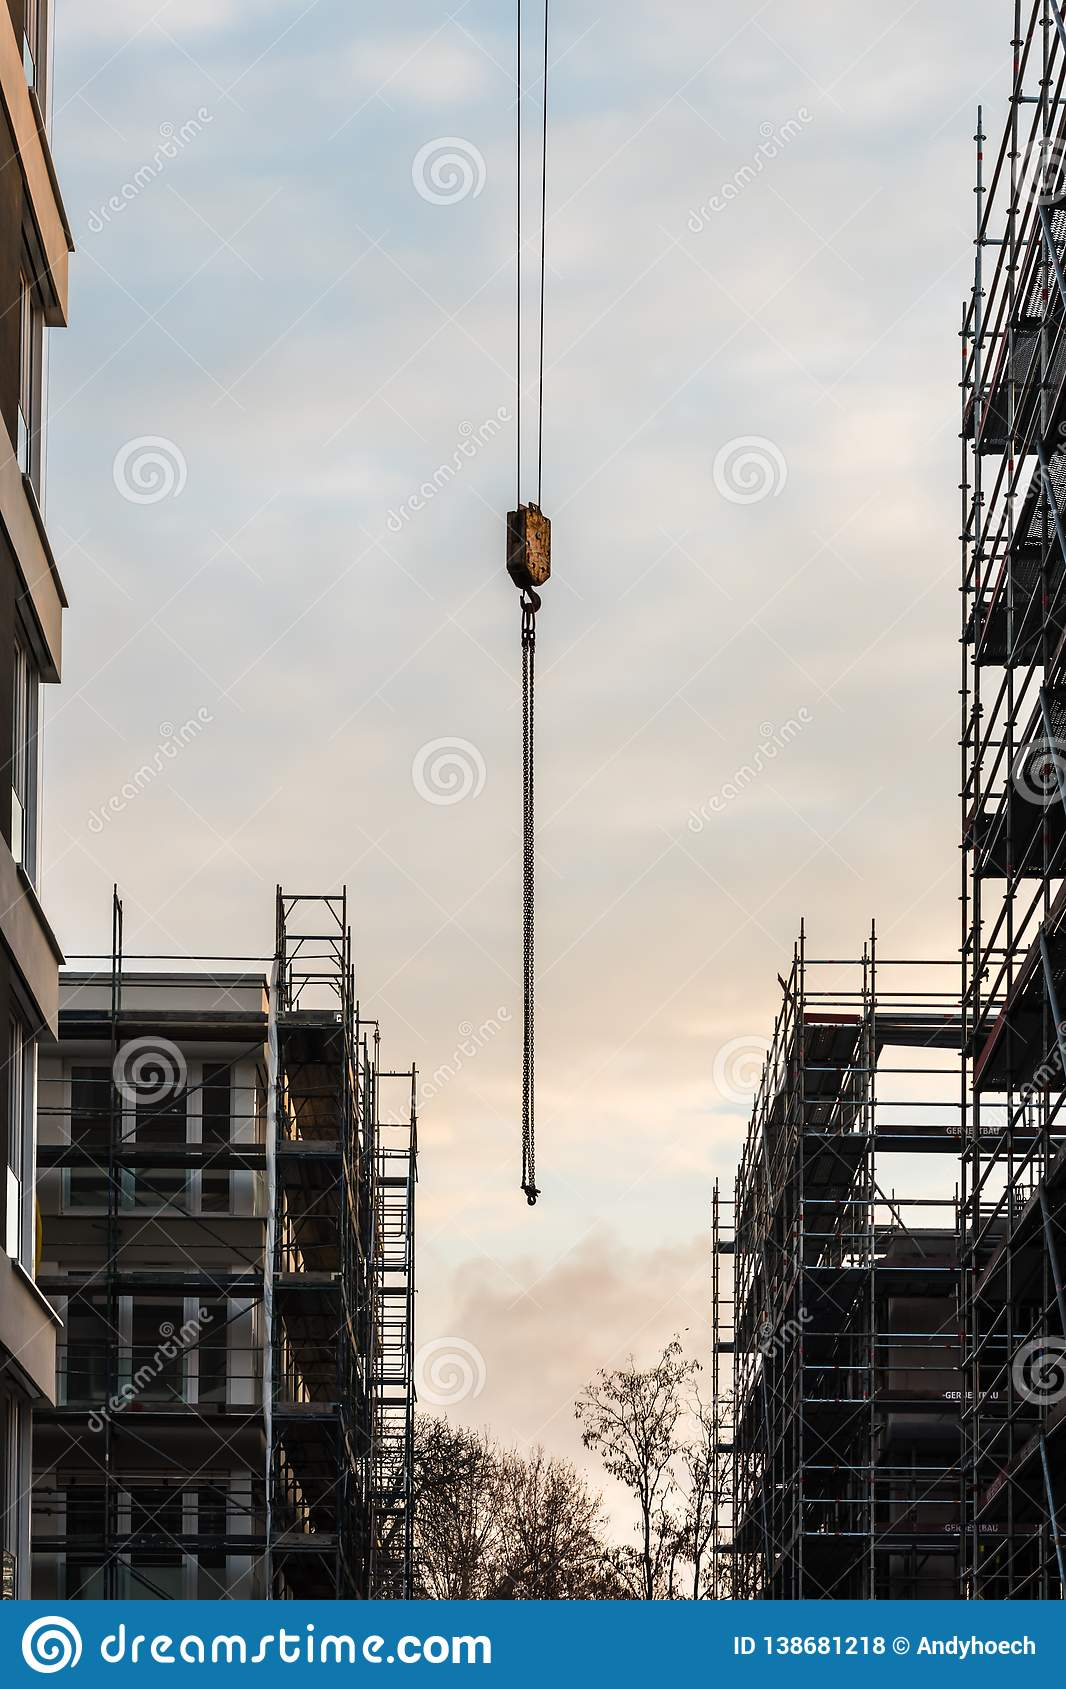 The hook of the crane between the new house and the scaffolding